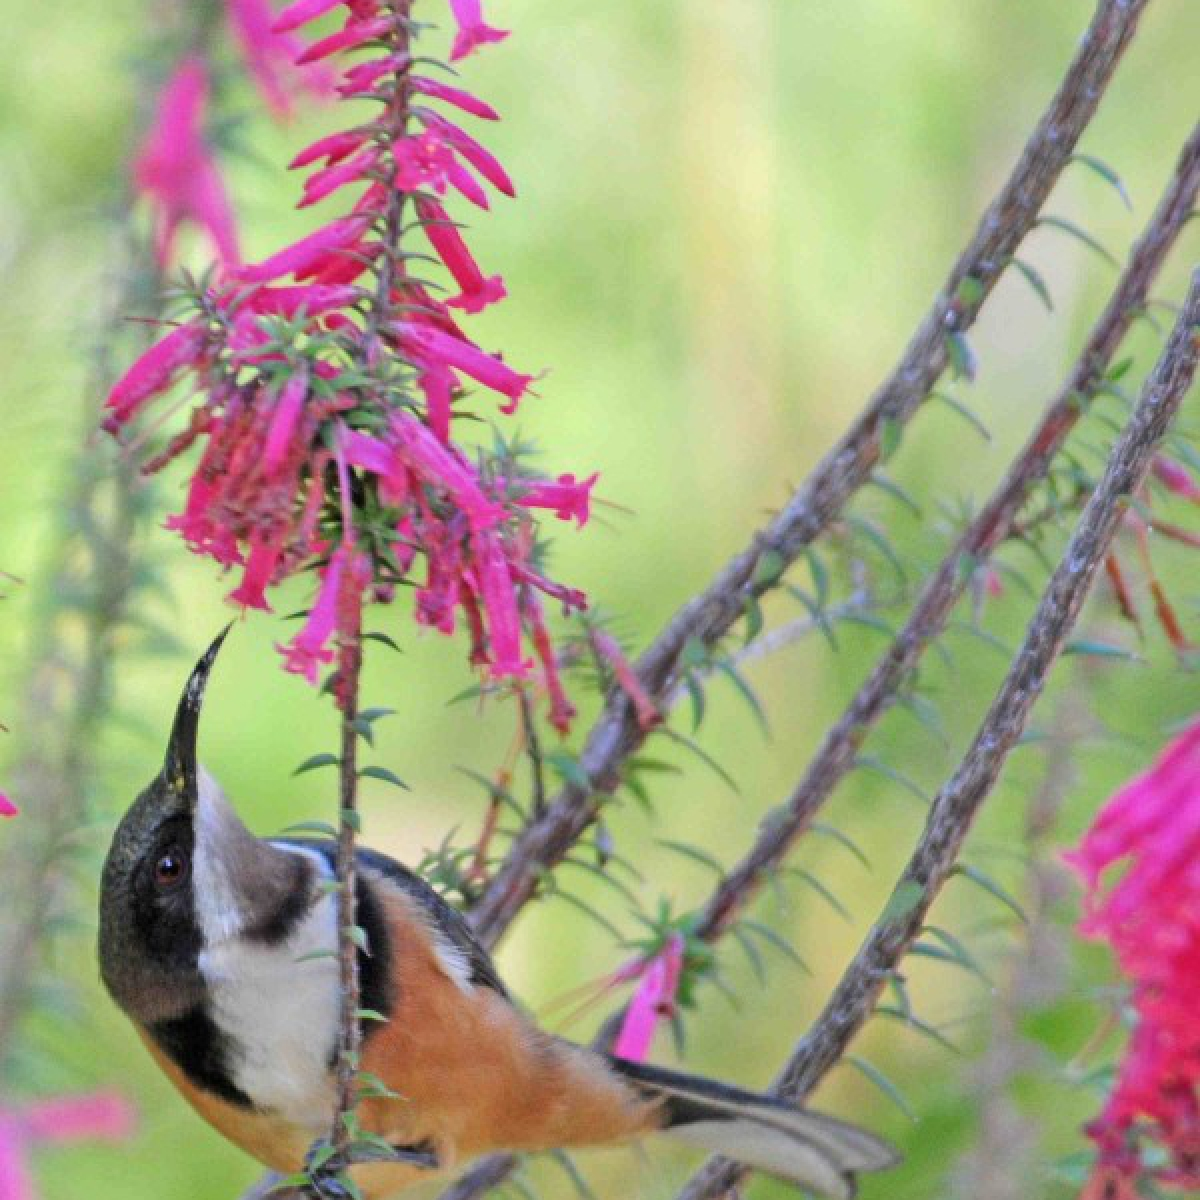 728 Eastern Spinebill